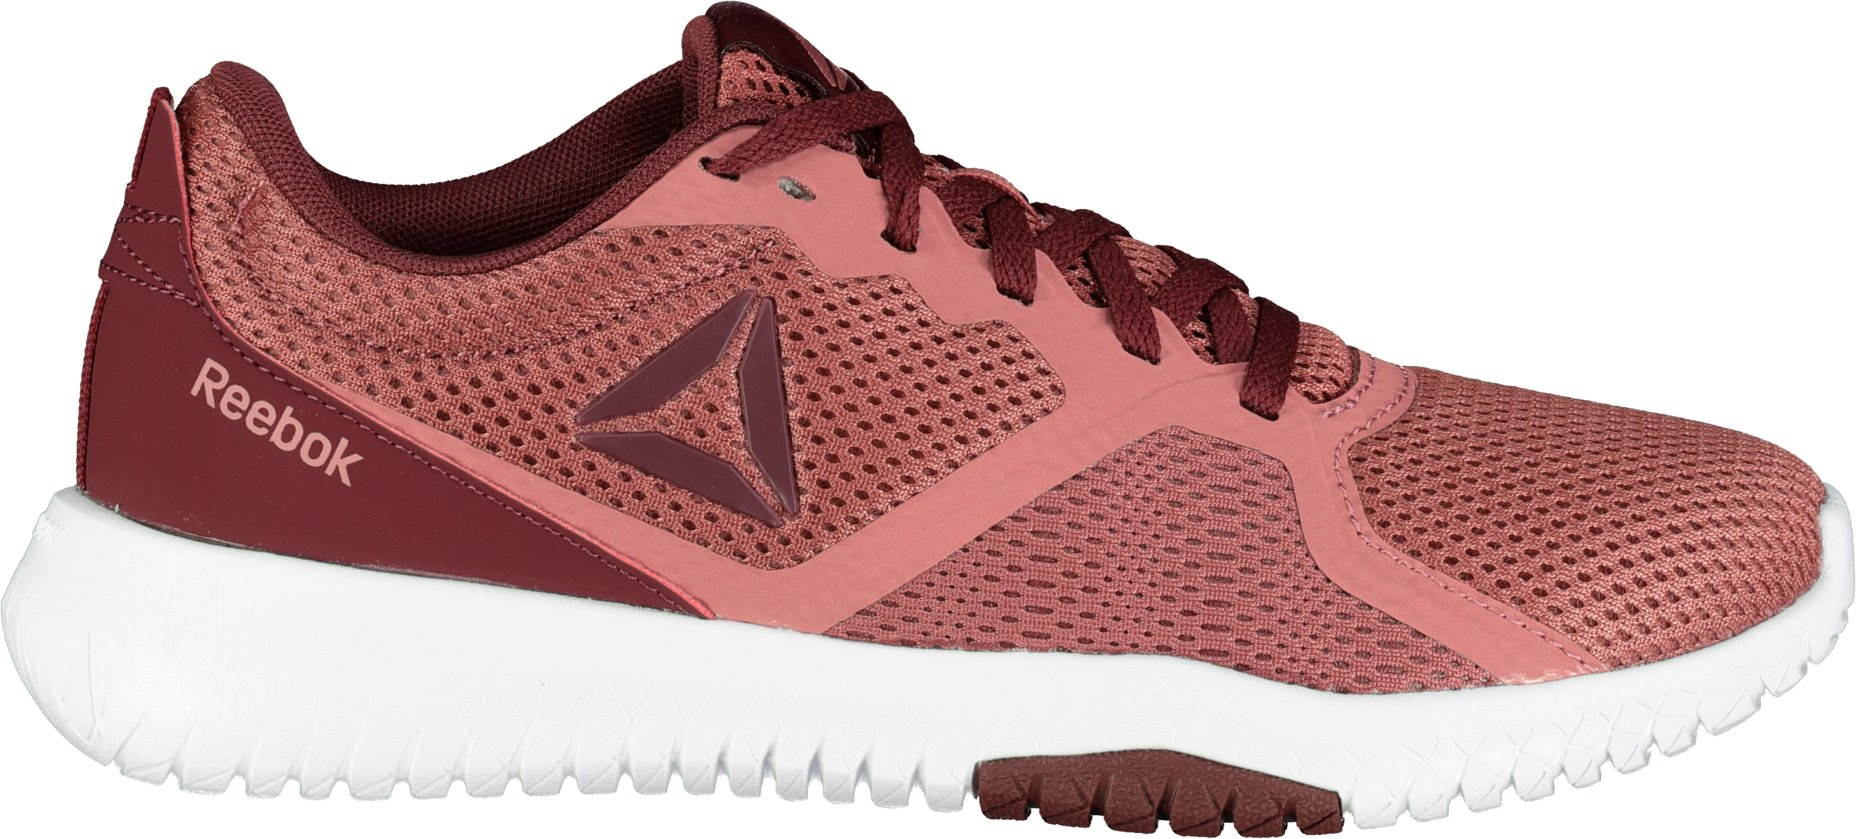 Reebok REEBOK FLEXAGON ENERGY SHOES Sportssko Butikk, Reebok